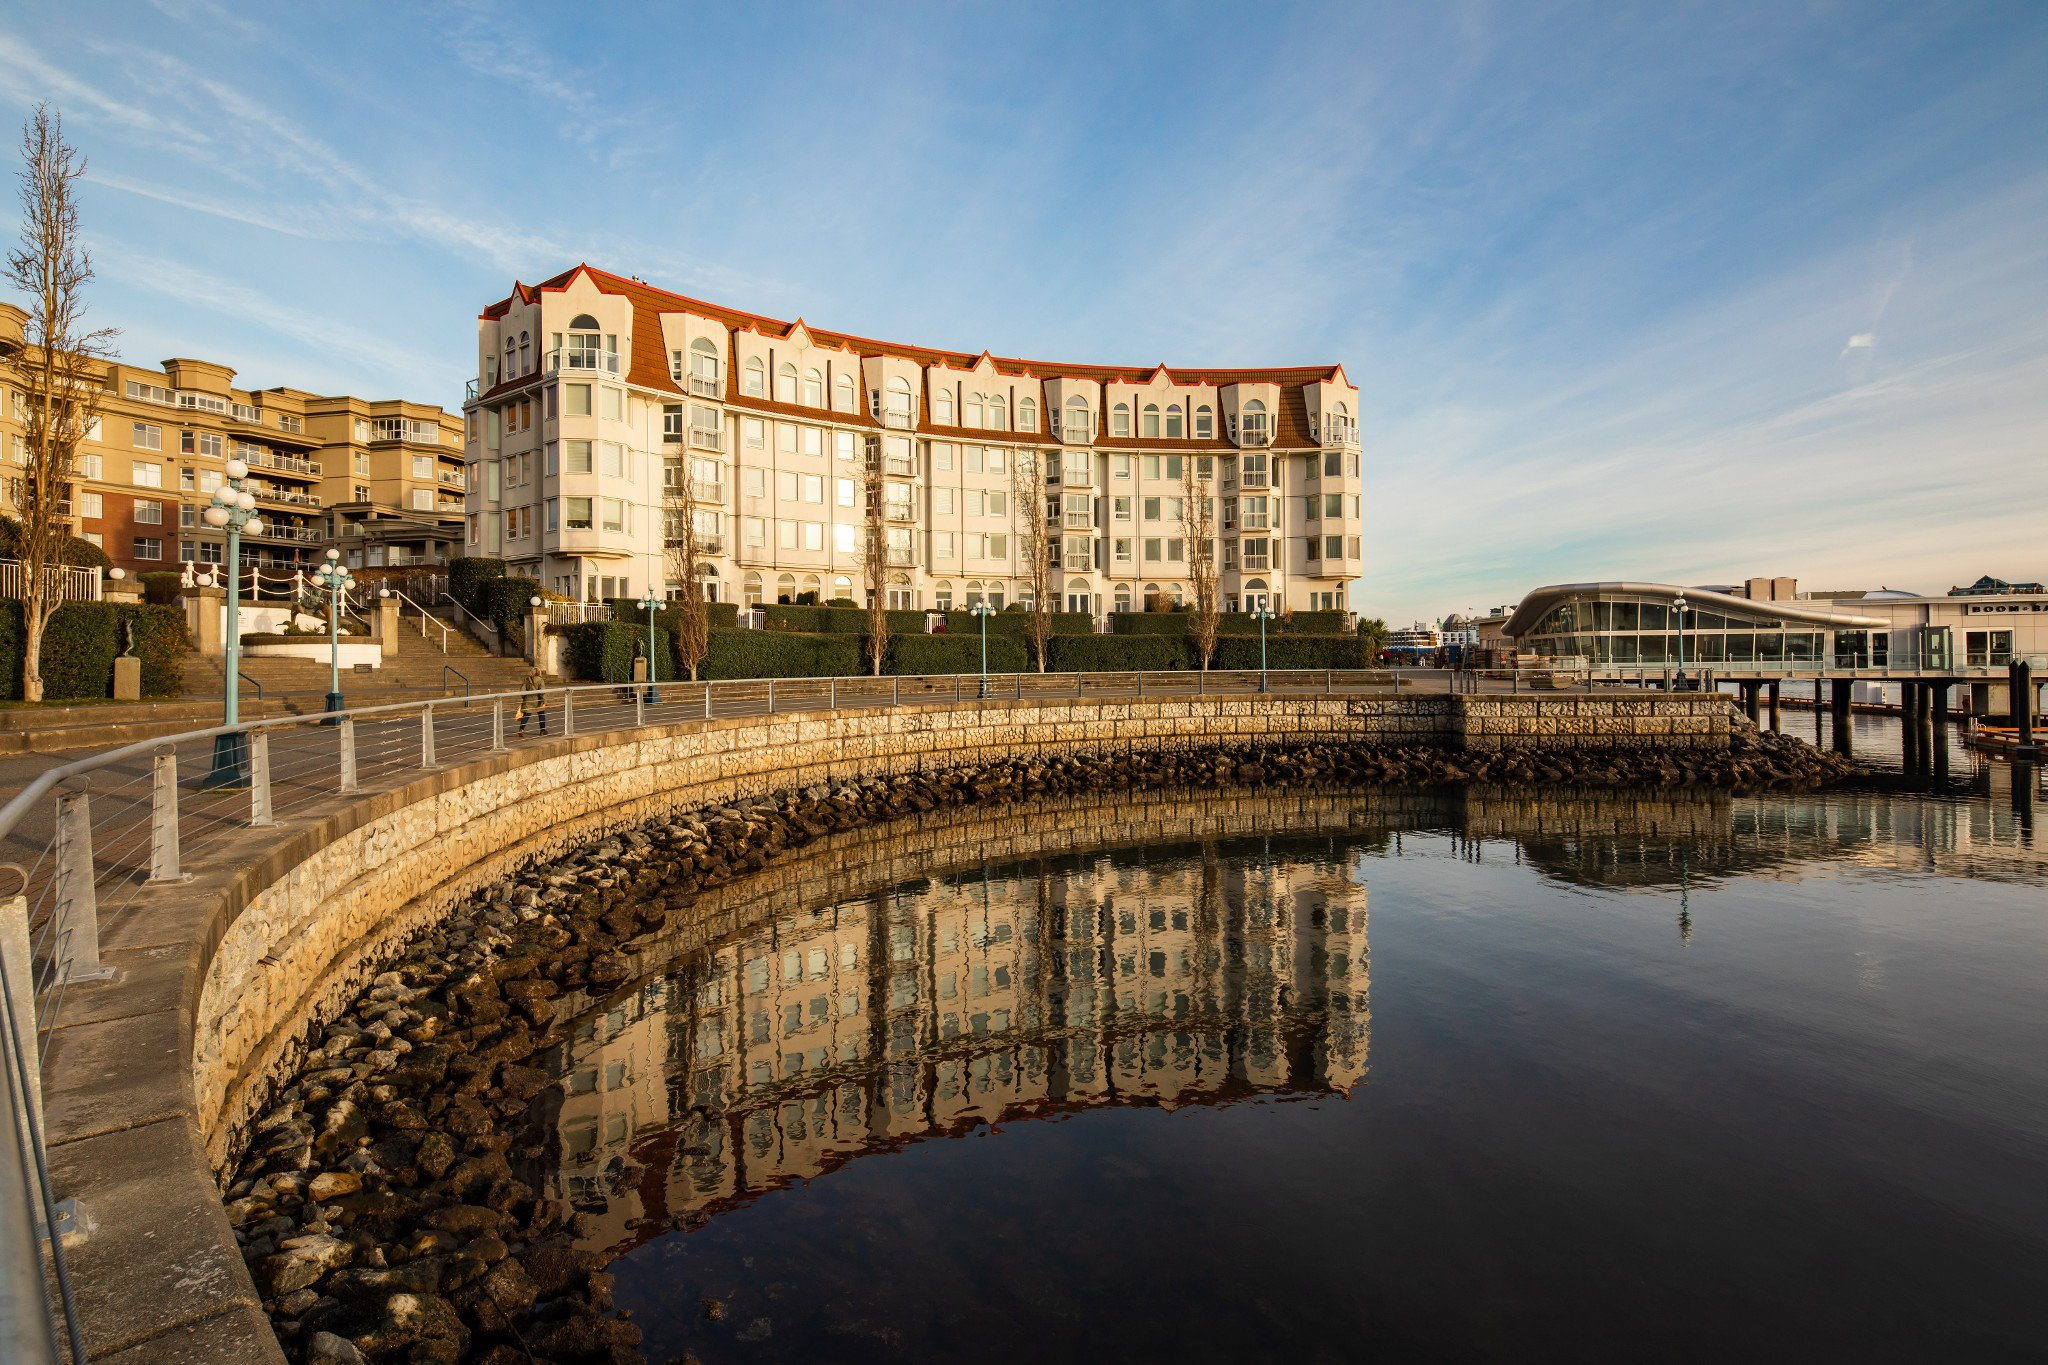 Main Photo: 110 10 Paul Kane Pl in VICTORIA: VW Songhees Condo Apartment for sale (Victoria West)  : MLS®# 805602